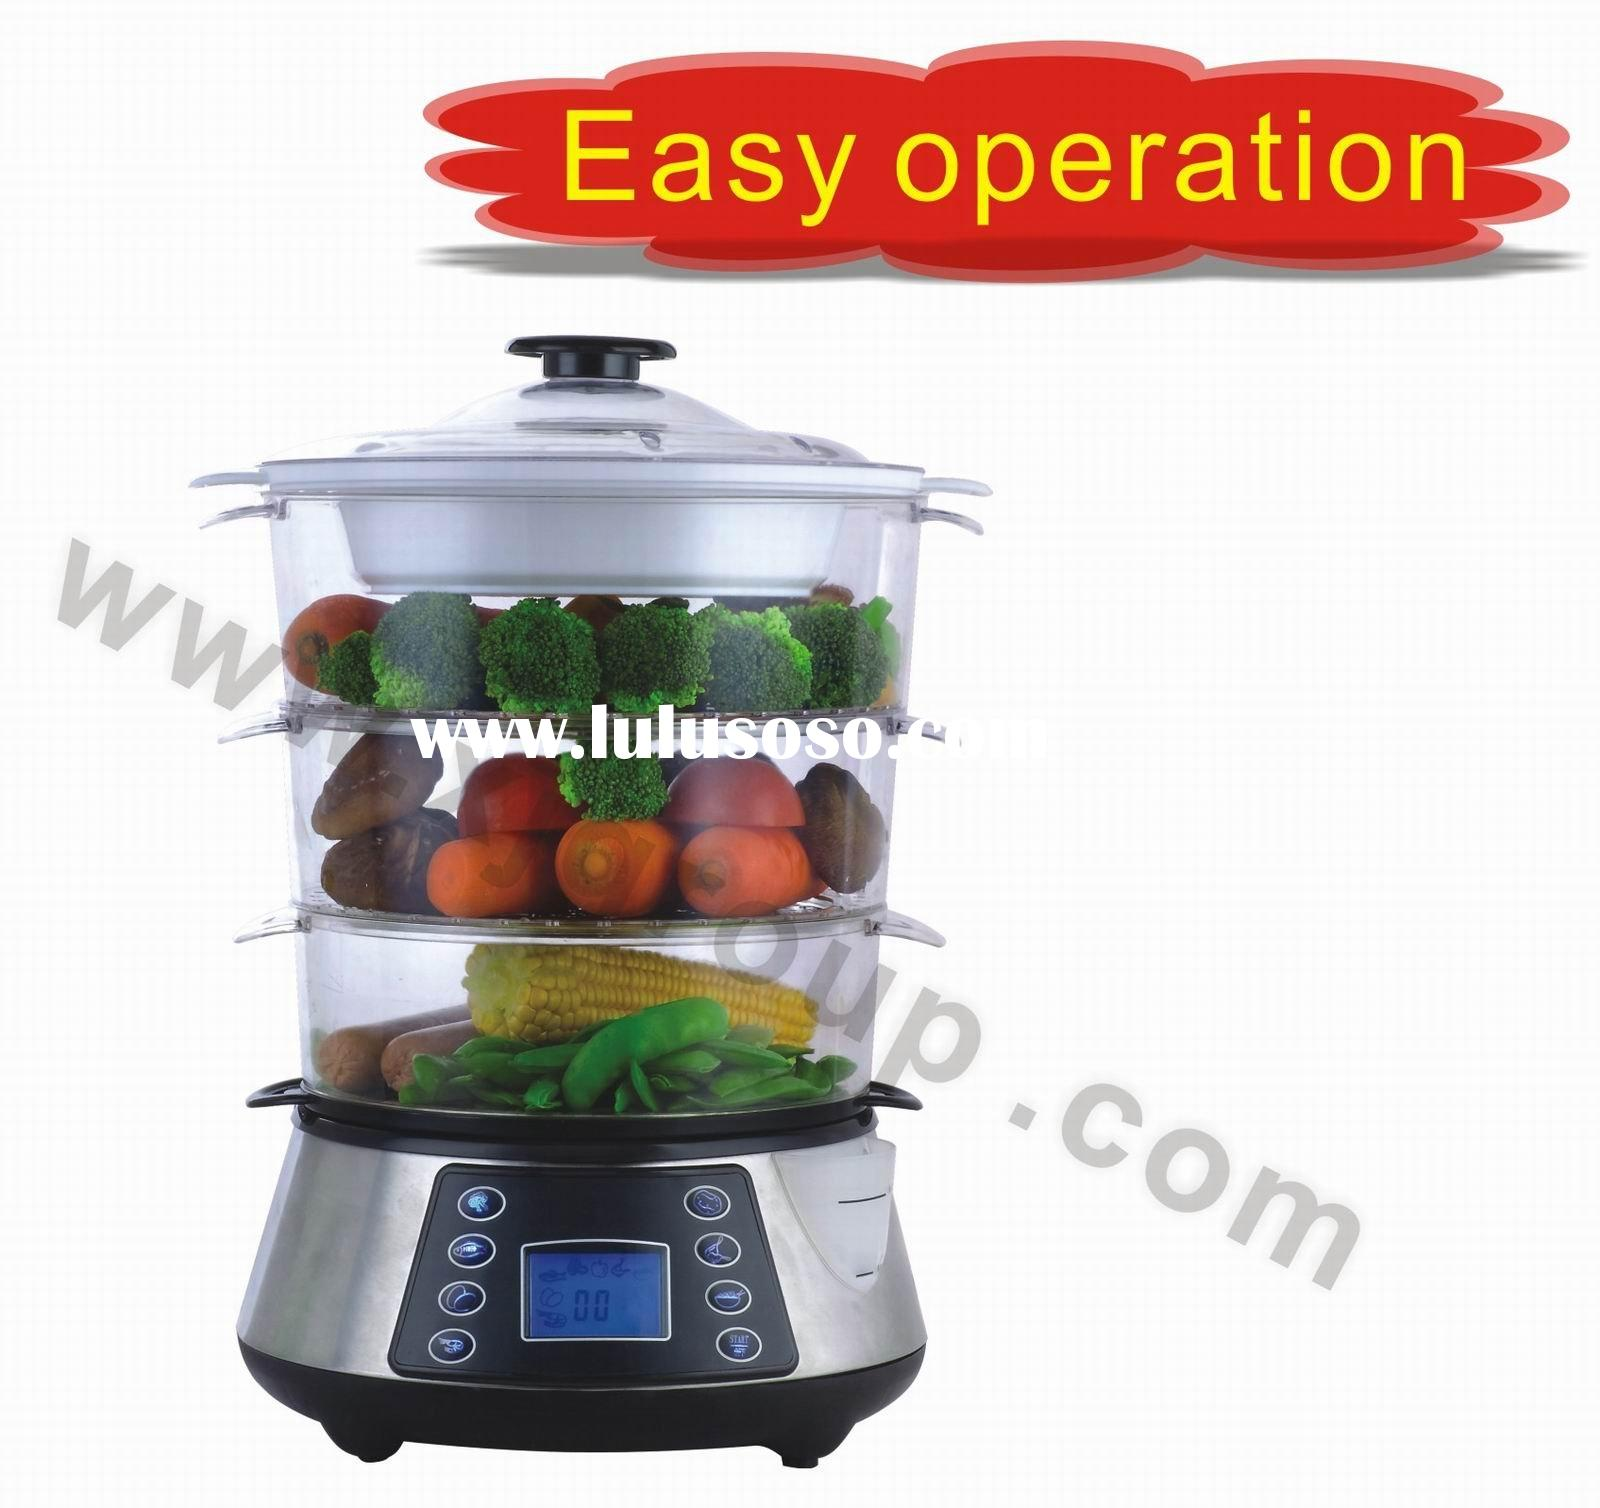 Stainless steel food steamer 3-layer XJ-7K118